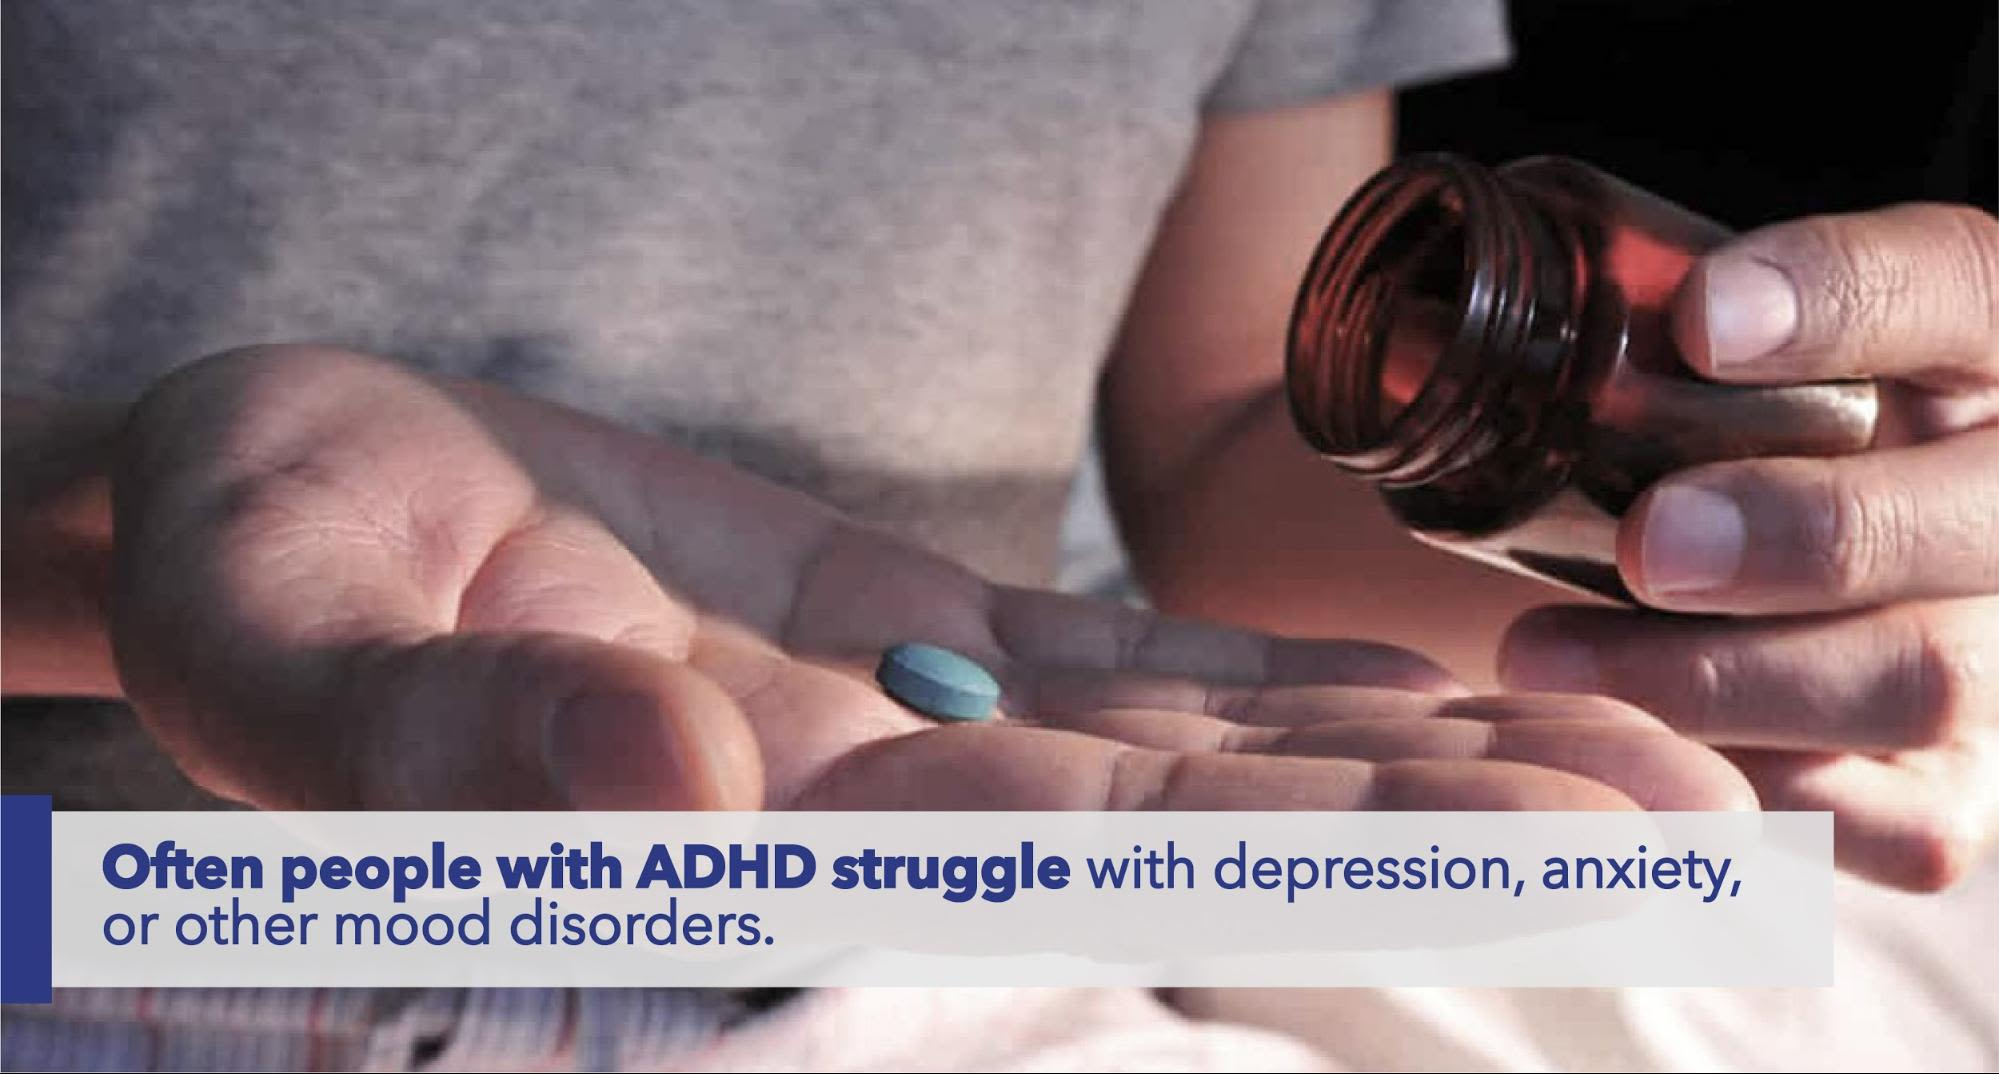 Often People with ADHD struggle with depression, anxiety, or other mood disorders.